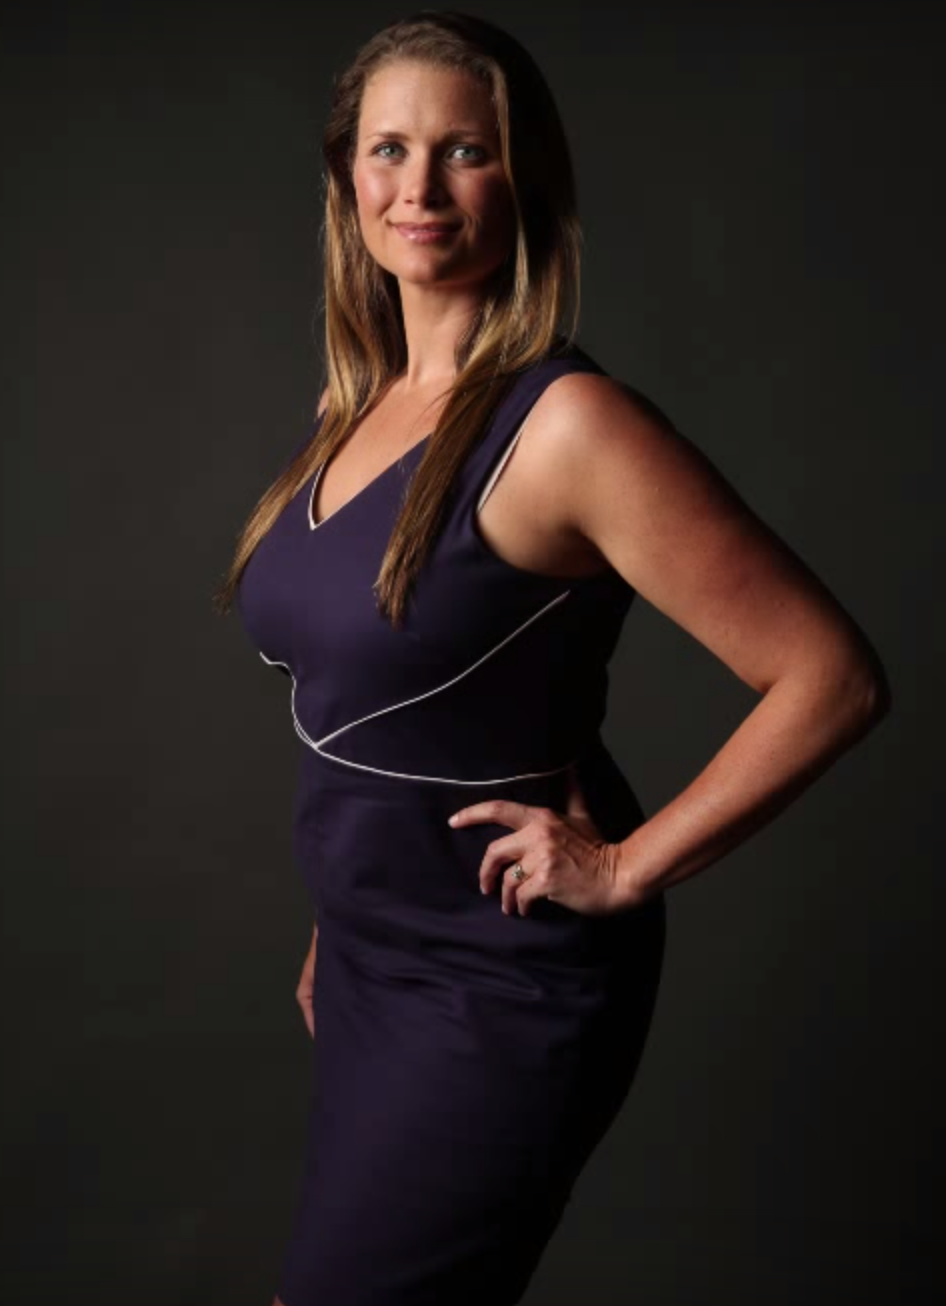 Lindsay Adler Shows You How to Pose a Full Figured Woman